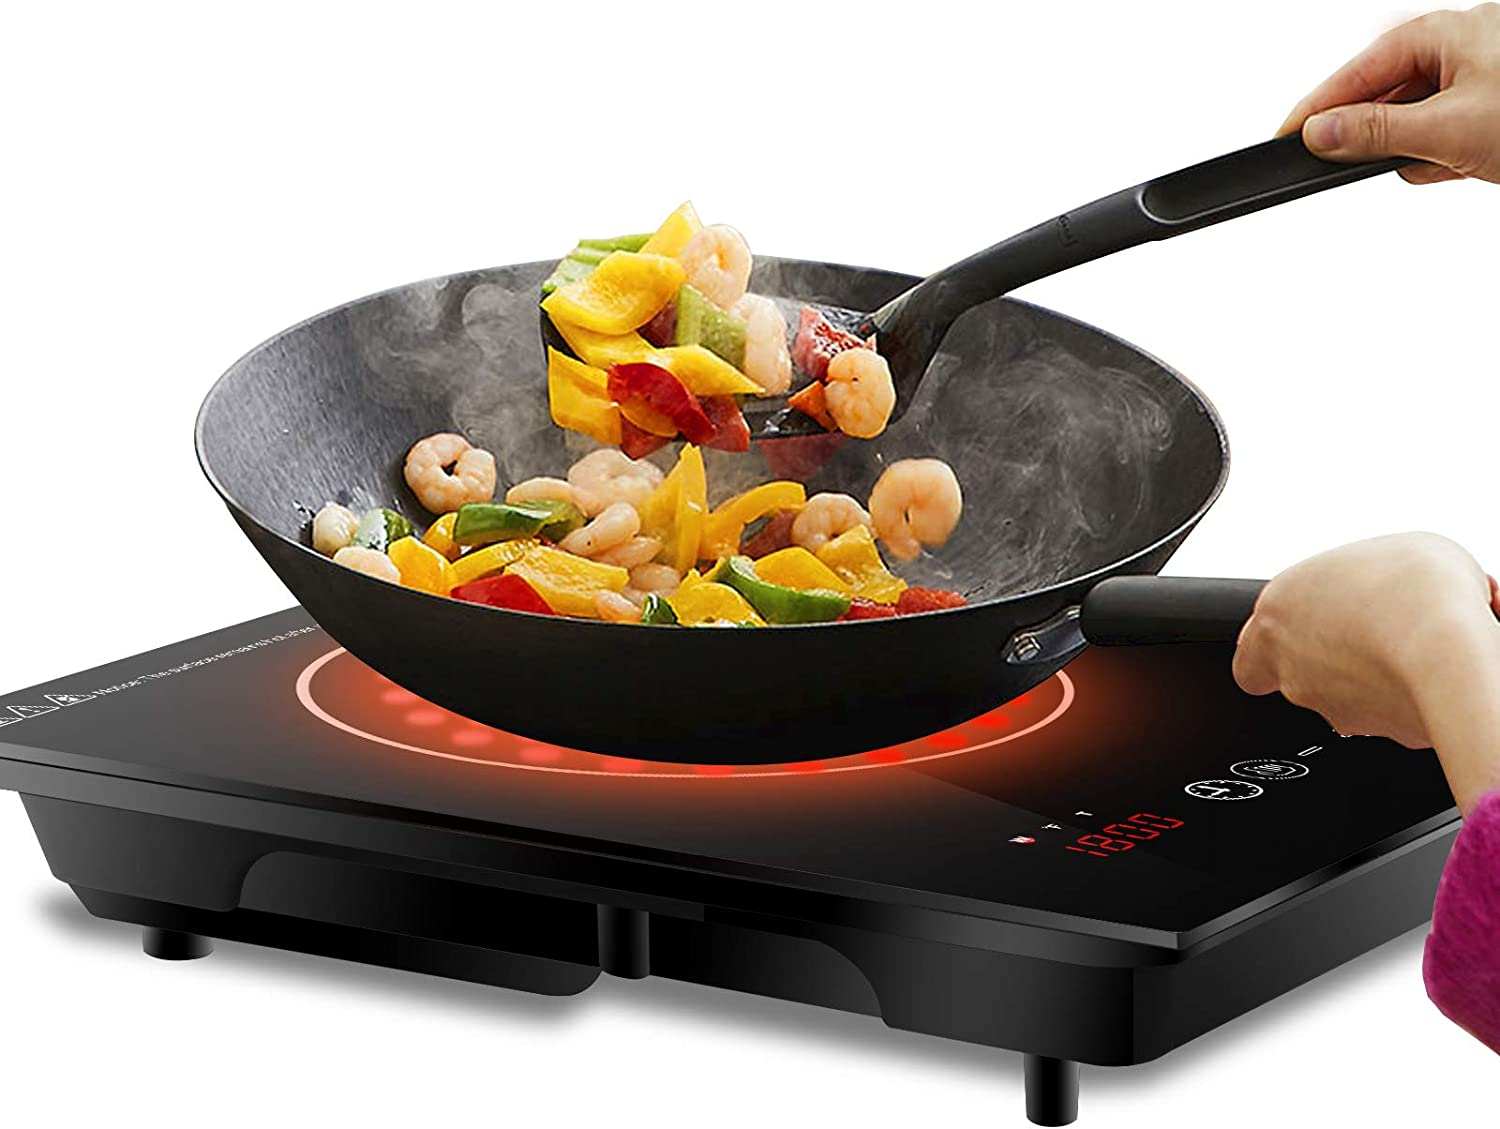 SUPER DEAL Pro Induction Cooktop, 1800W Induction Cooker w Wide Cookware Compatibility Induction Touch-Control Countertop Burner with Adjustable 8 Power Temperature Settings